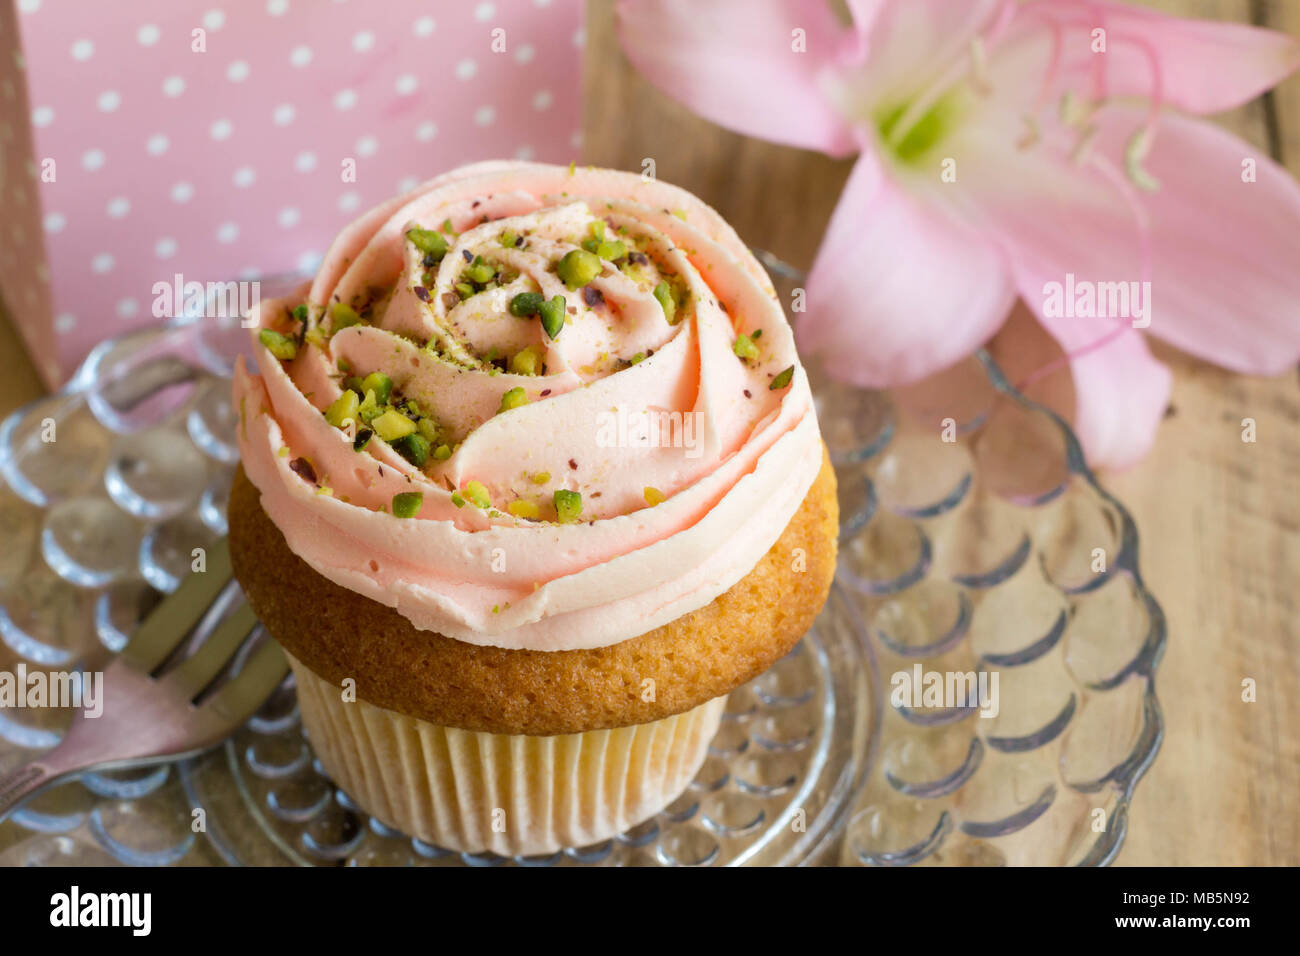 Pink cup cake with gift box and pink lily flower for birthday pink cup cake with gift box and pink lily flower for birthday celebration background izmirmasajfo